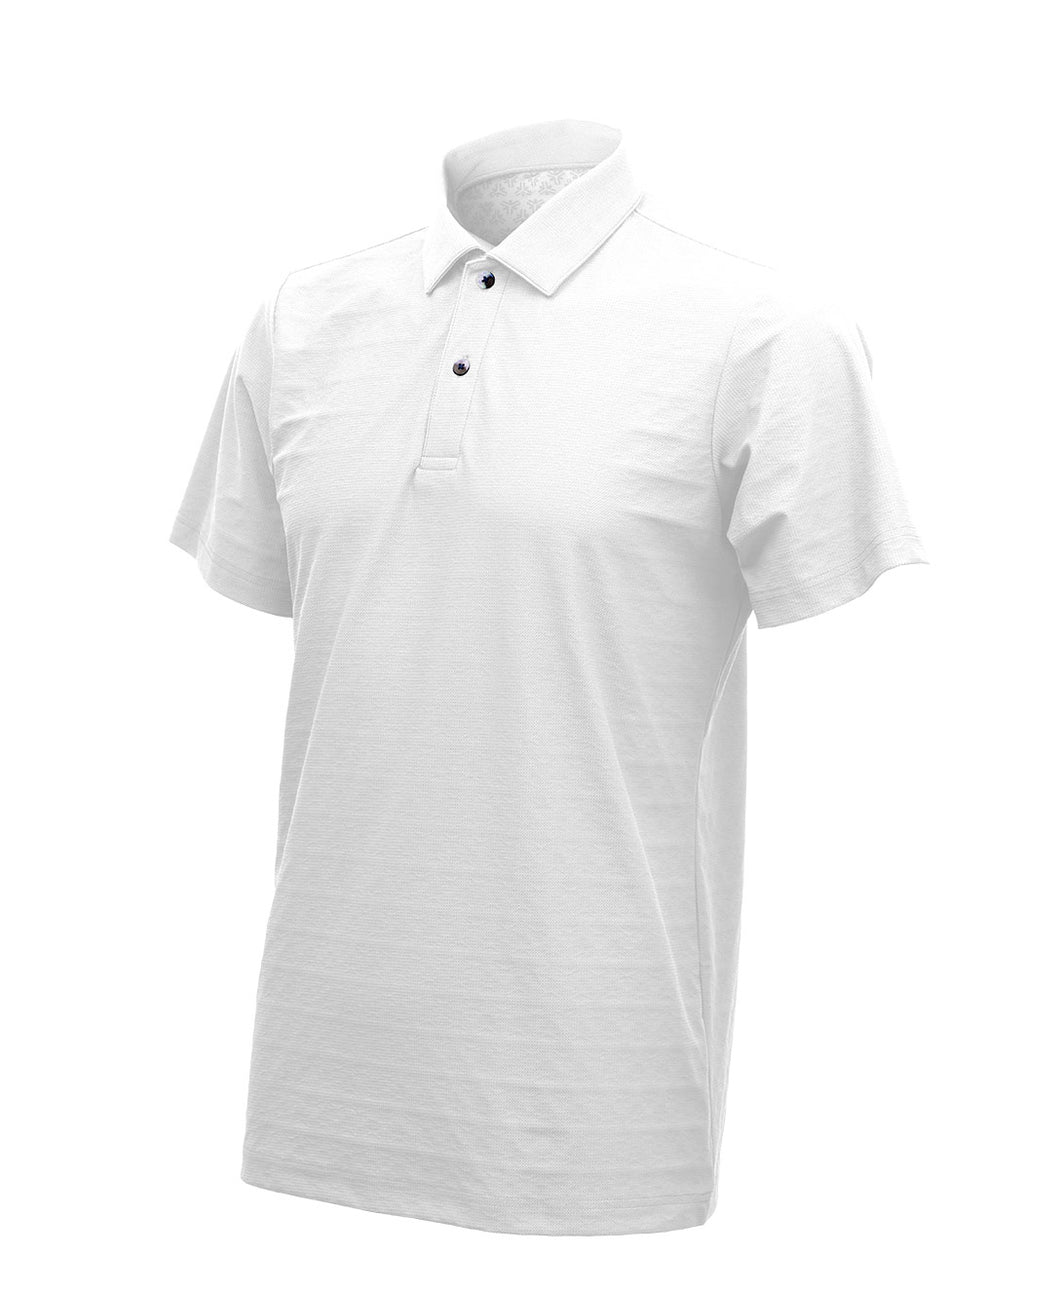 Freeze Tech Polo Shirt, Short Sleeve, White- Performance Sustained Cold Effect / Quick Dry / Antibacterial & Anti Odour / Anti UV